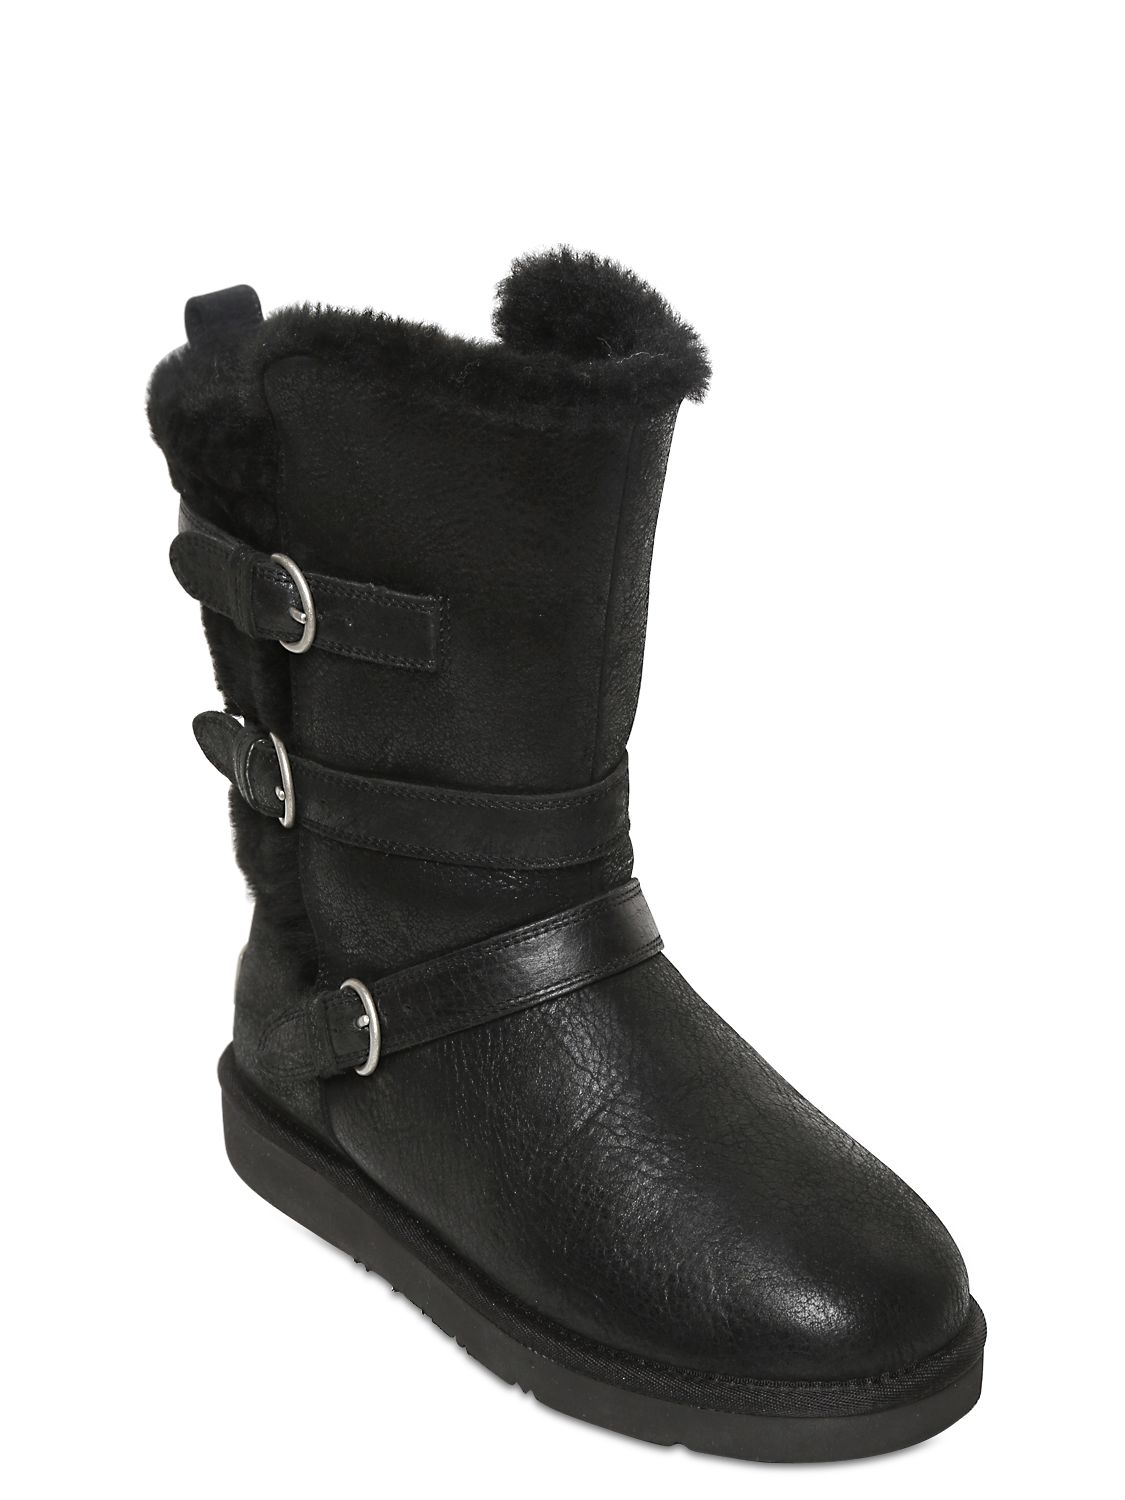 UGG Becket Waxed Shearling Boots in Black